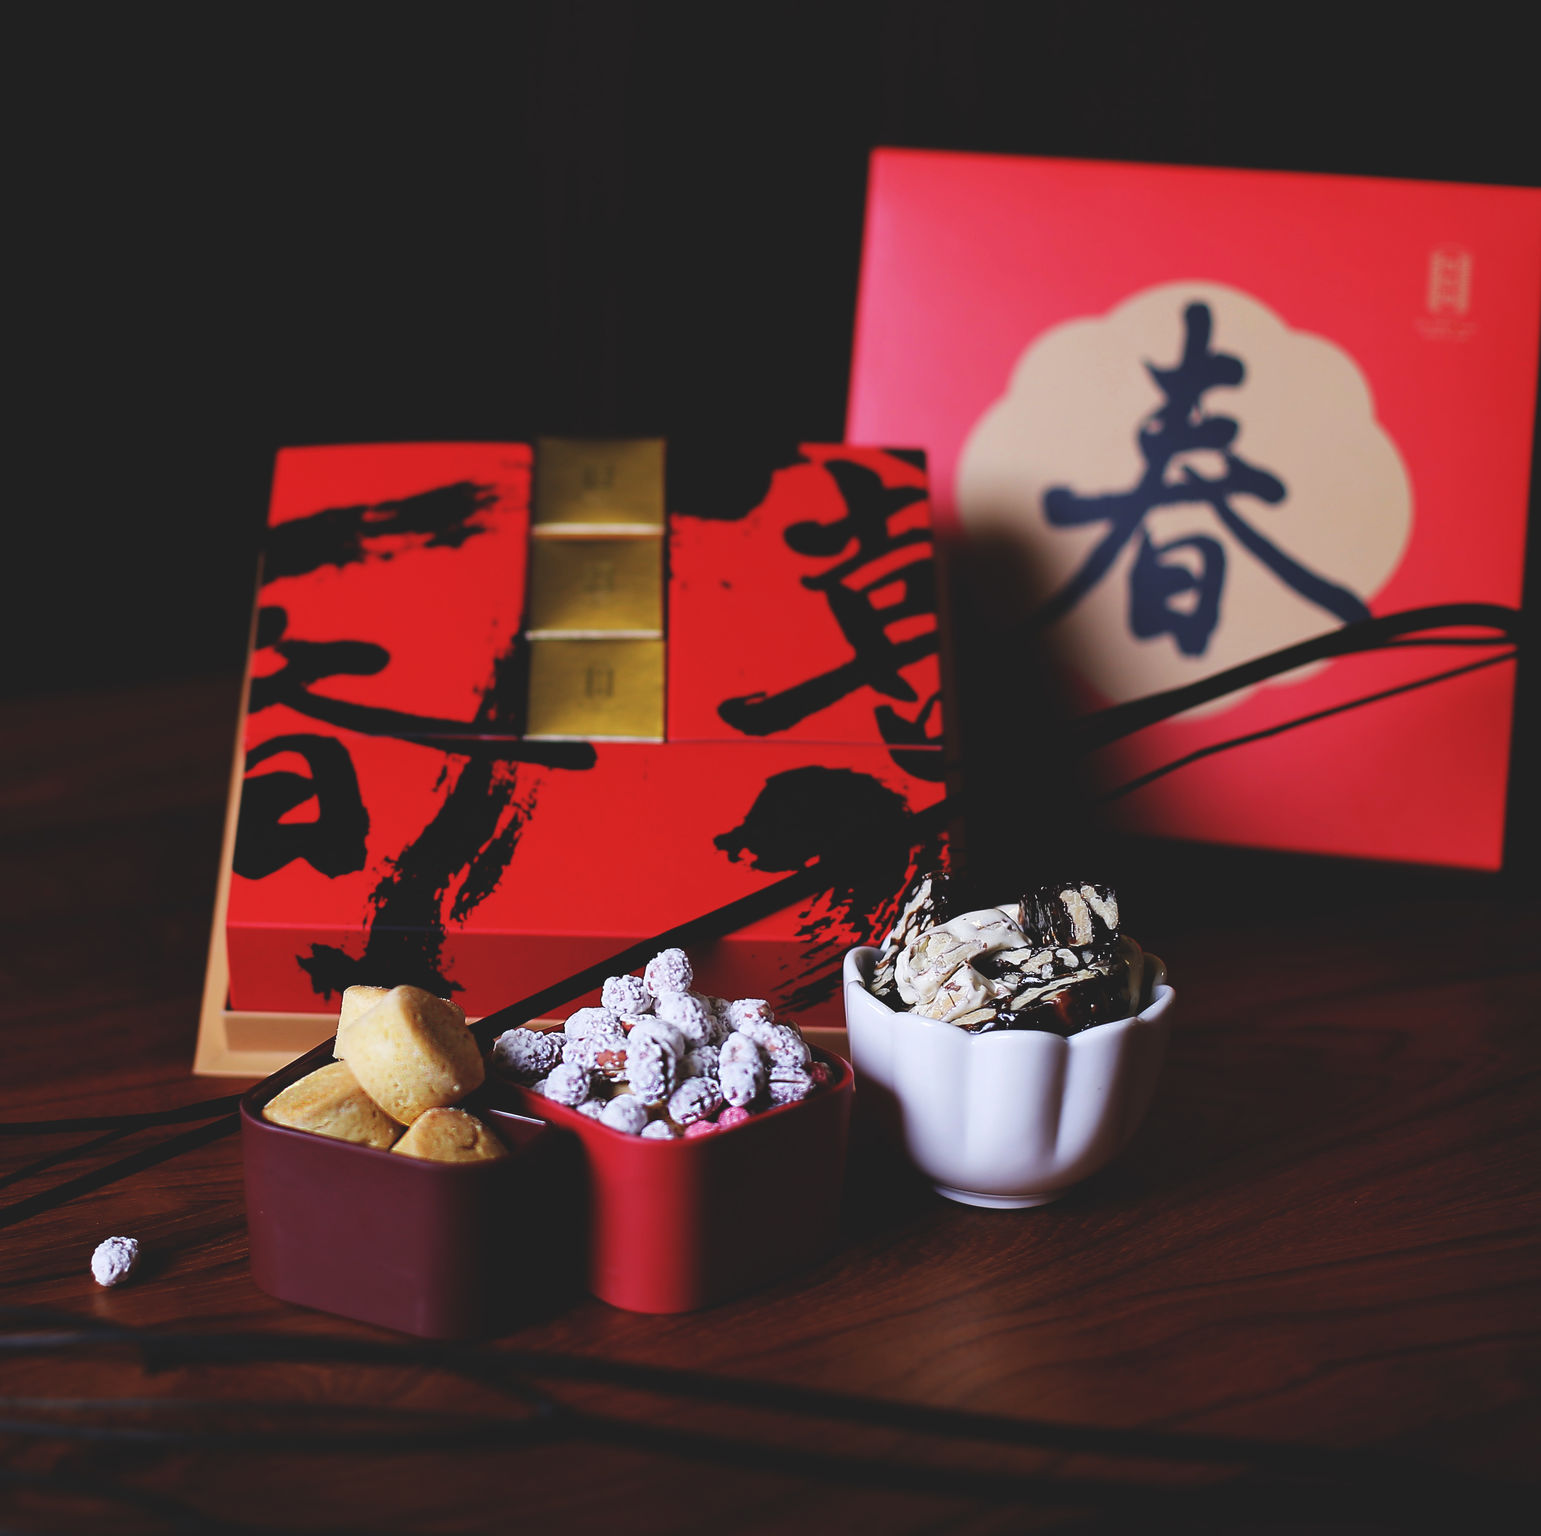 CHINESE NEW YEAR GIFT BOX - Entry - iF WORLD DESIGN GUIDE